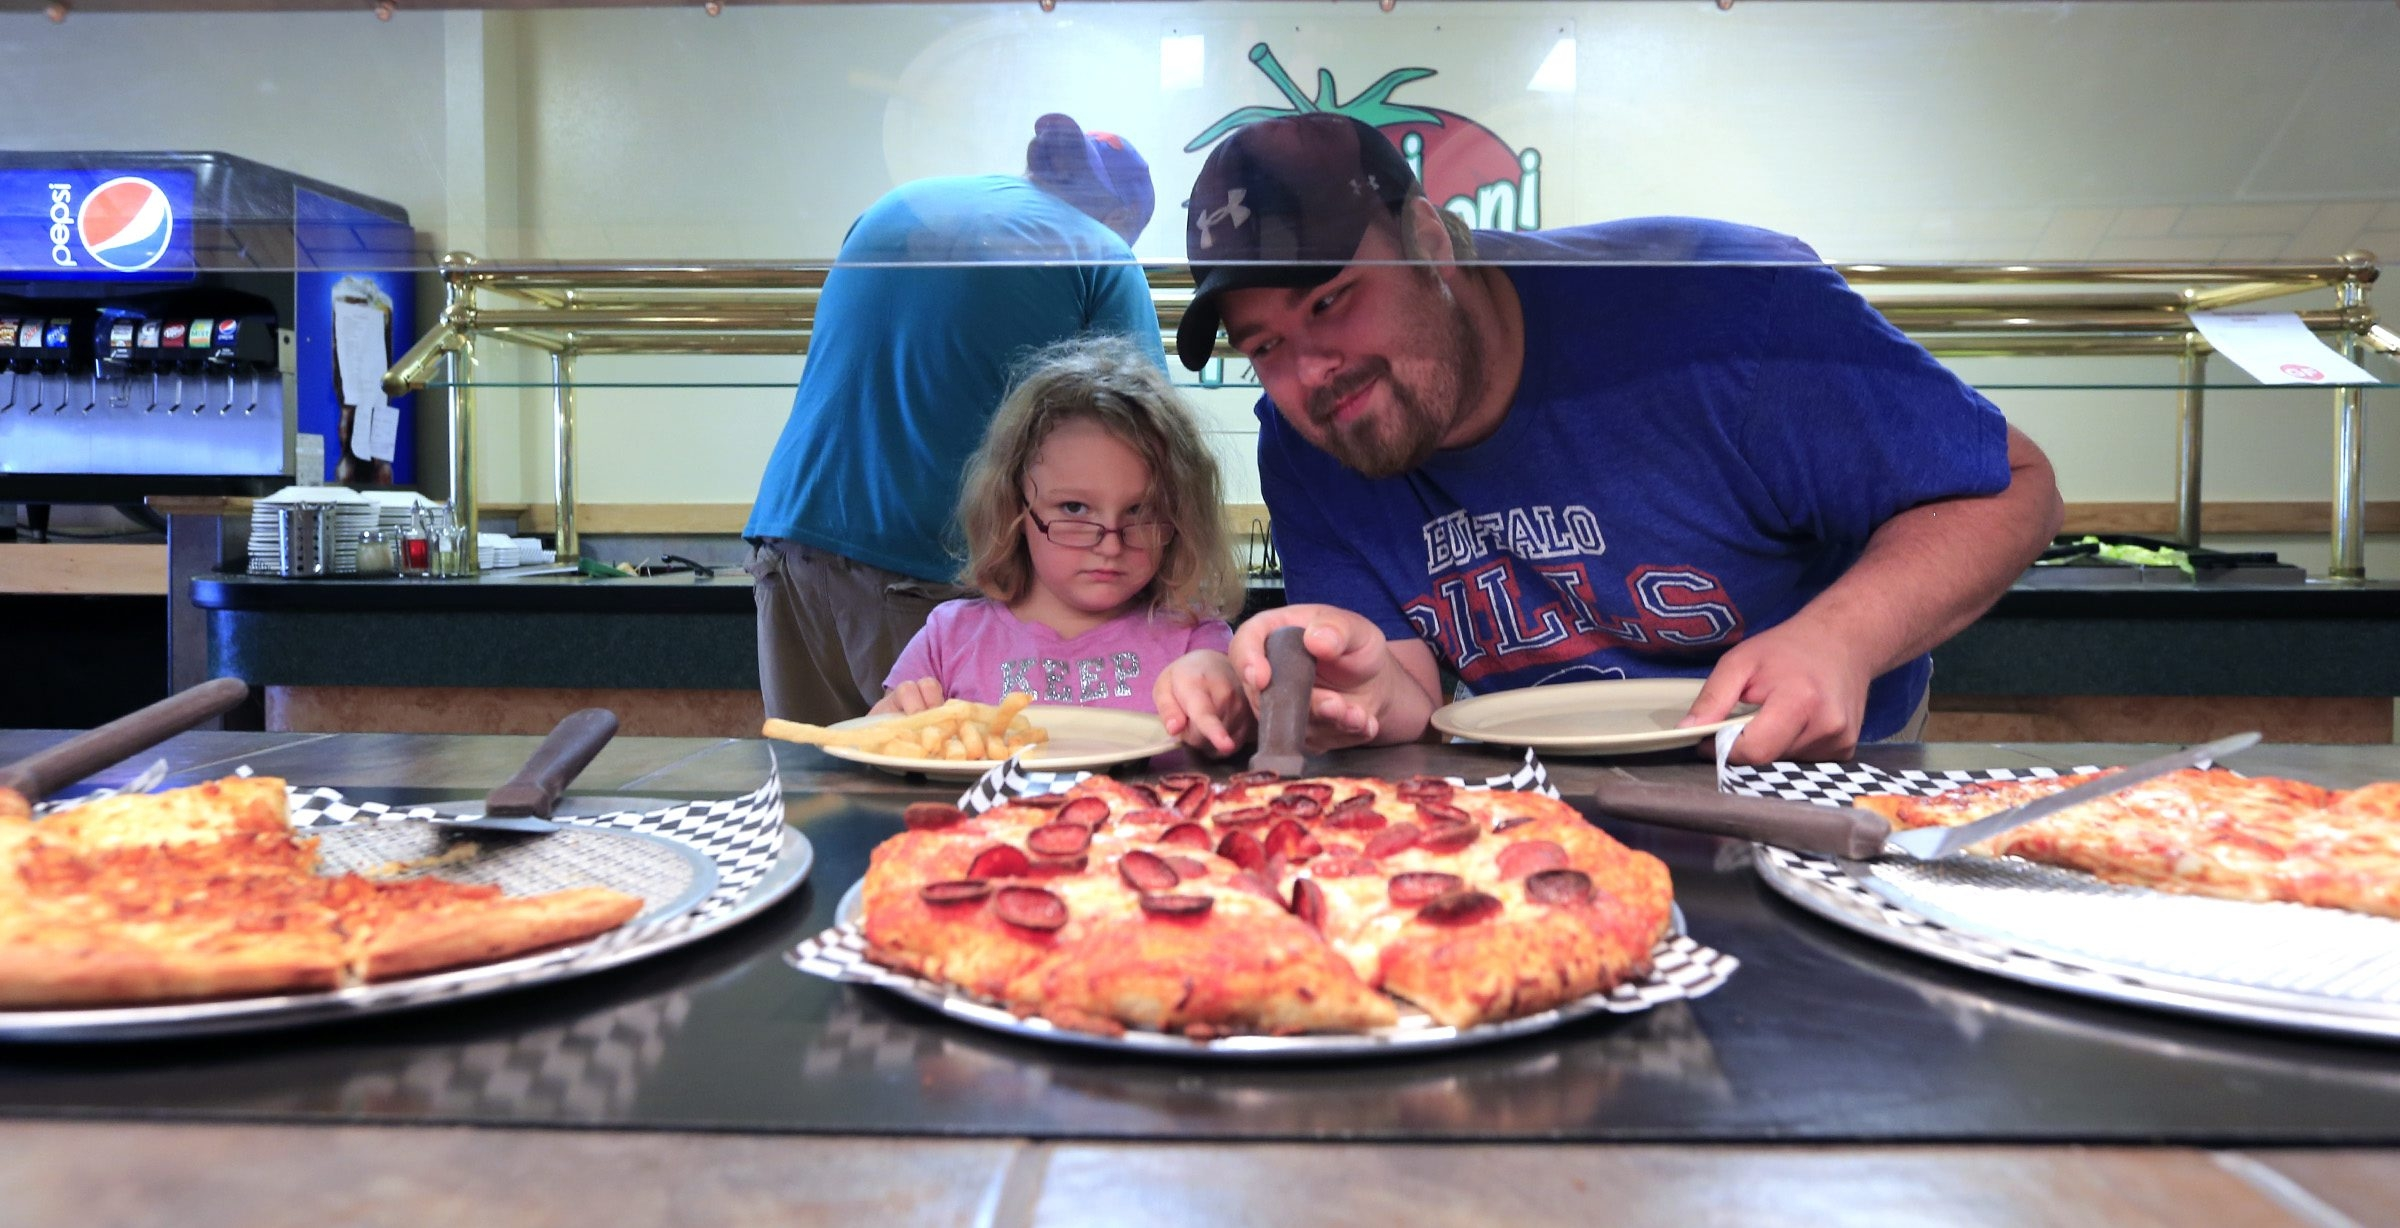 Jerry Jarmusz and his daughter Kylie pick out a pizza at Toni Pepperoni's buffet in Orchard Park.